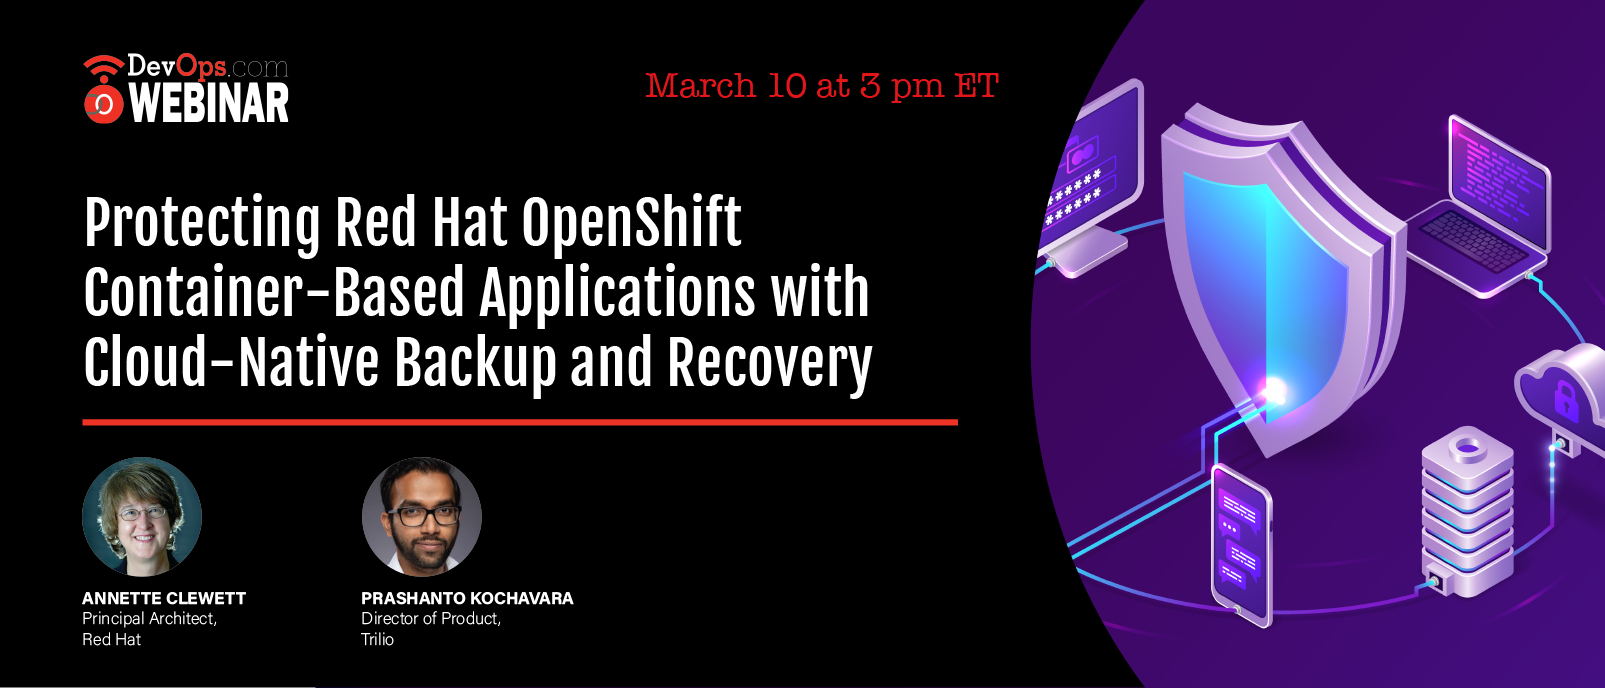 Protecting Red Hat OpenShift Container-Based Applications with Cloud-Native Backup and Recovery